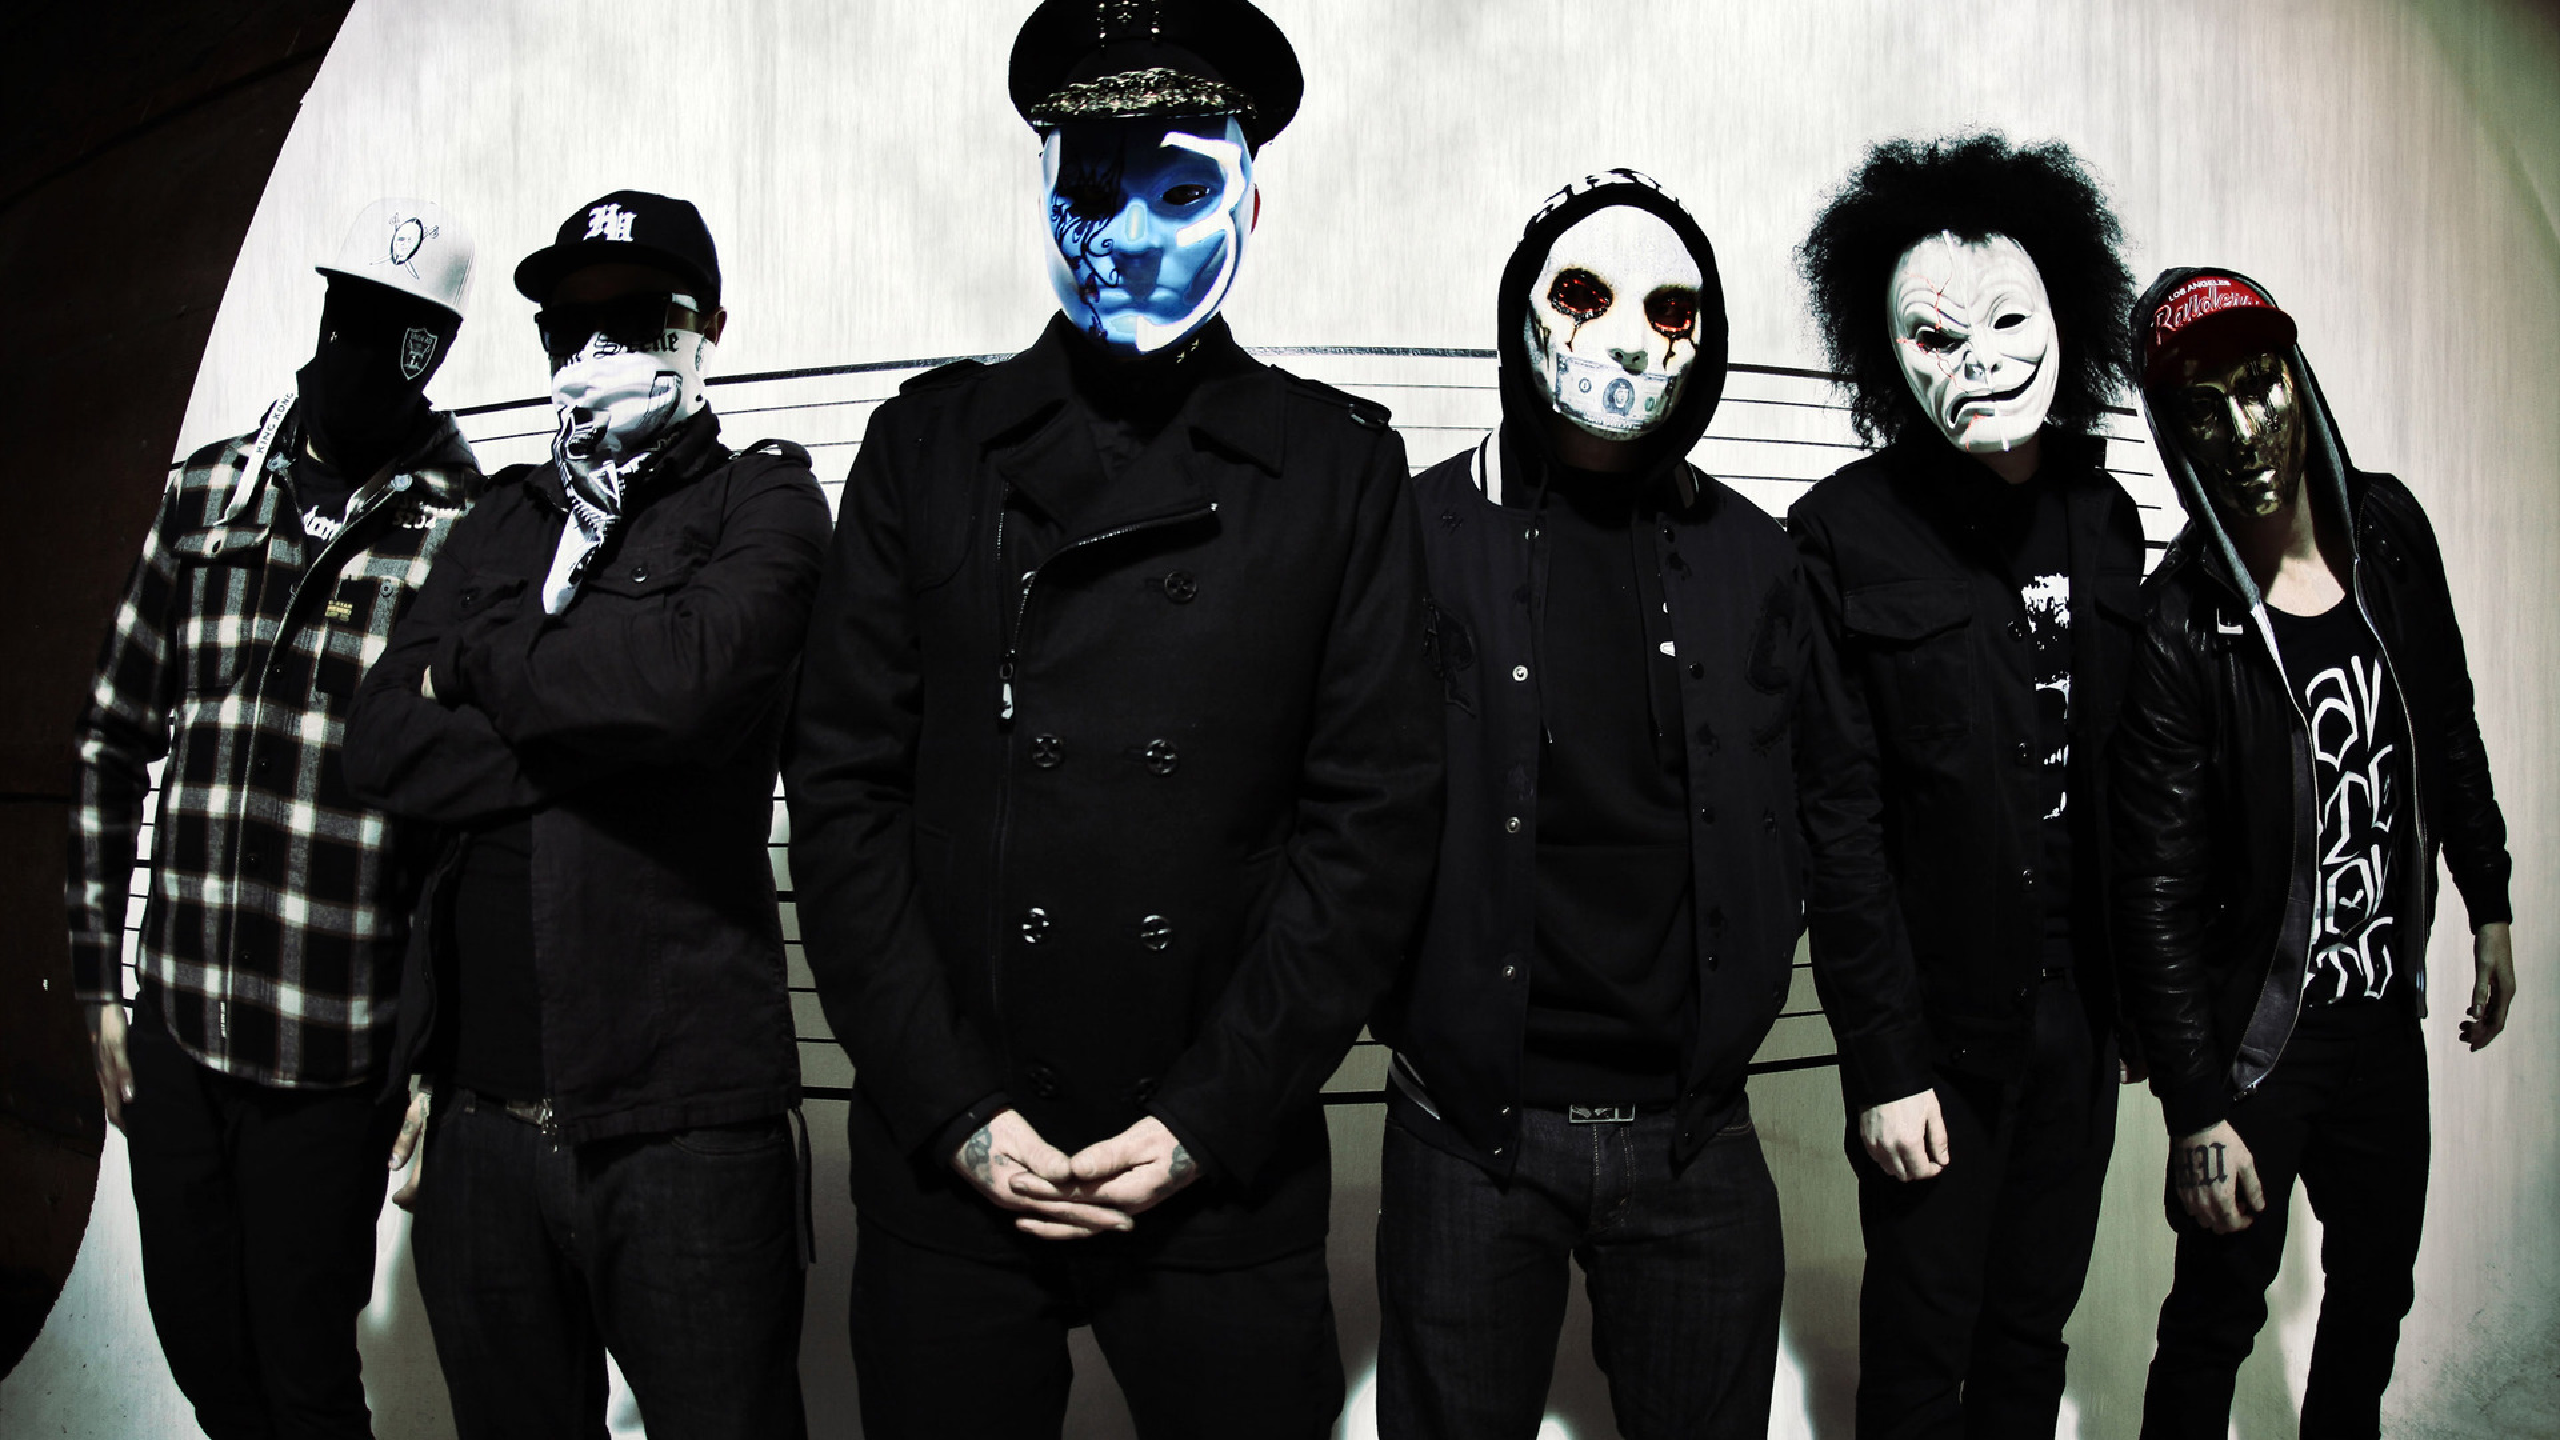 Hollywood Undead Tour Dates 2020 Hollywood Undead tour dates 2019 2020. Hollywood Undead tickets